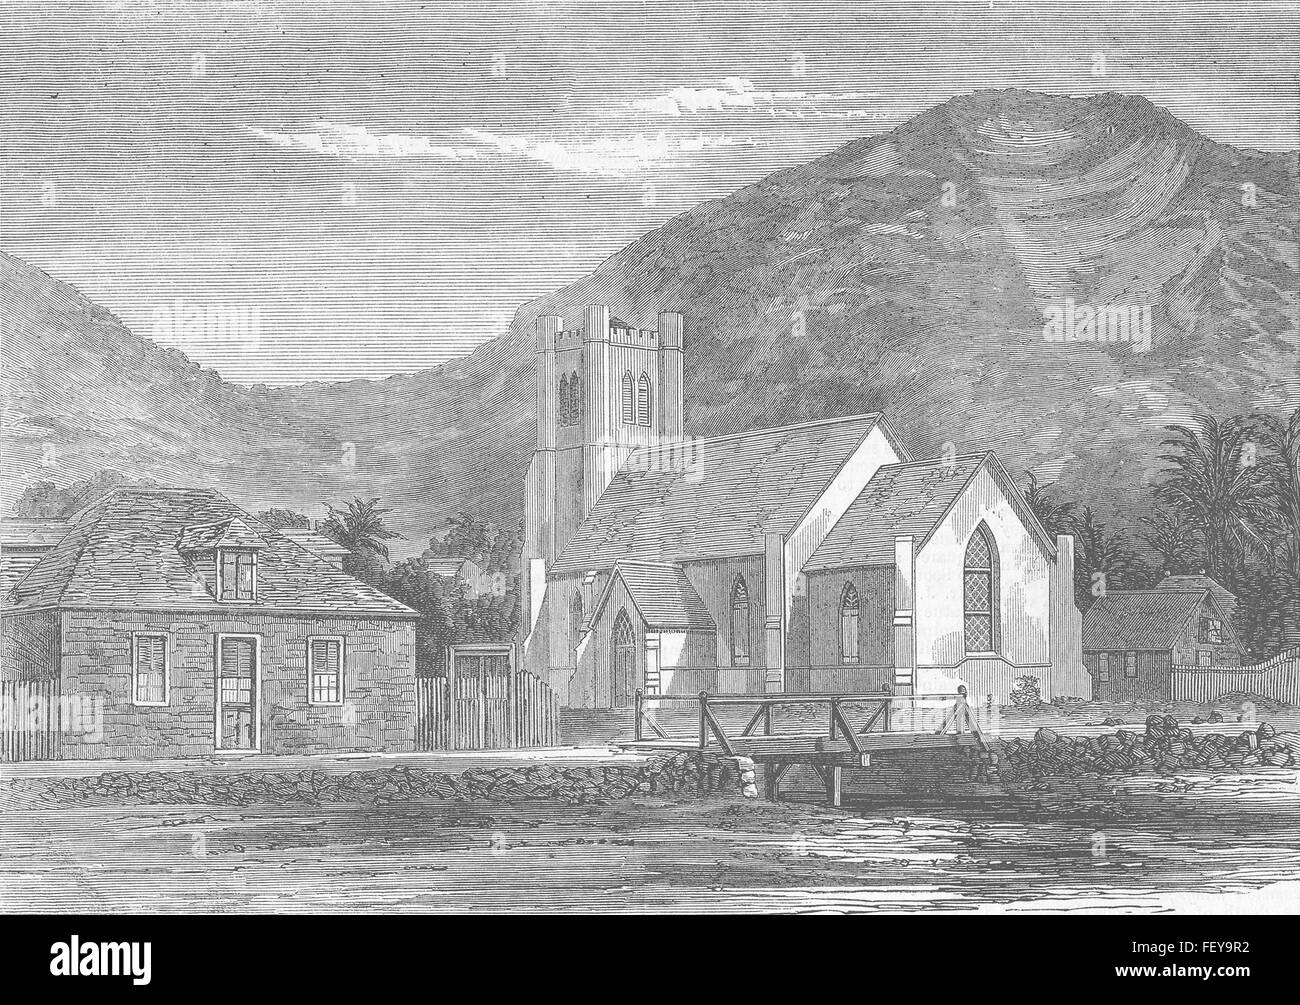 SEYCHELLES St Paul's Church, Victoria, Mahe 1863. Illustrated London News - Stock Image